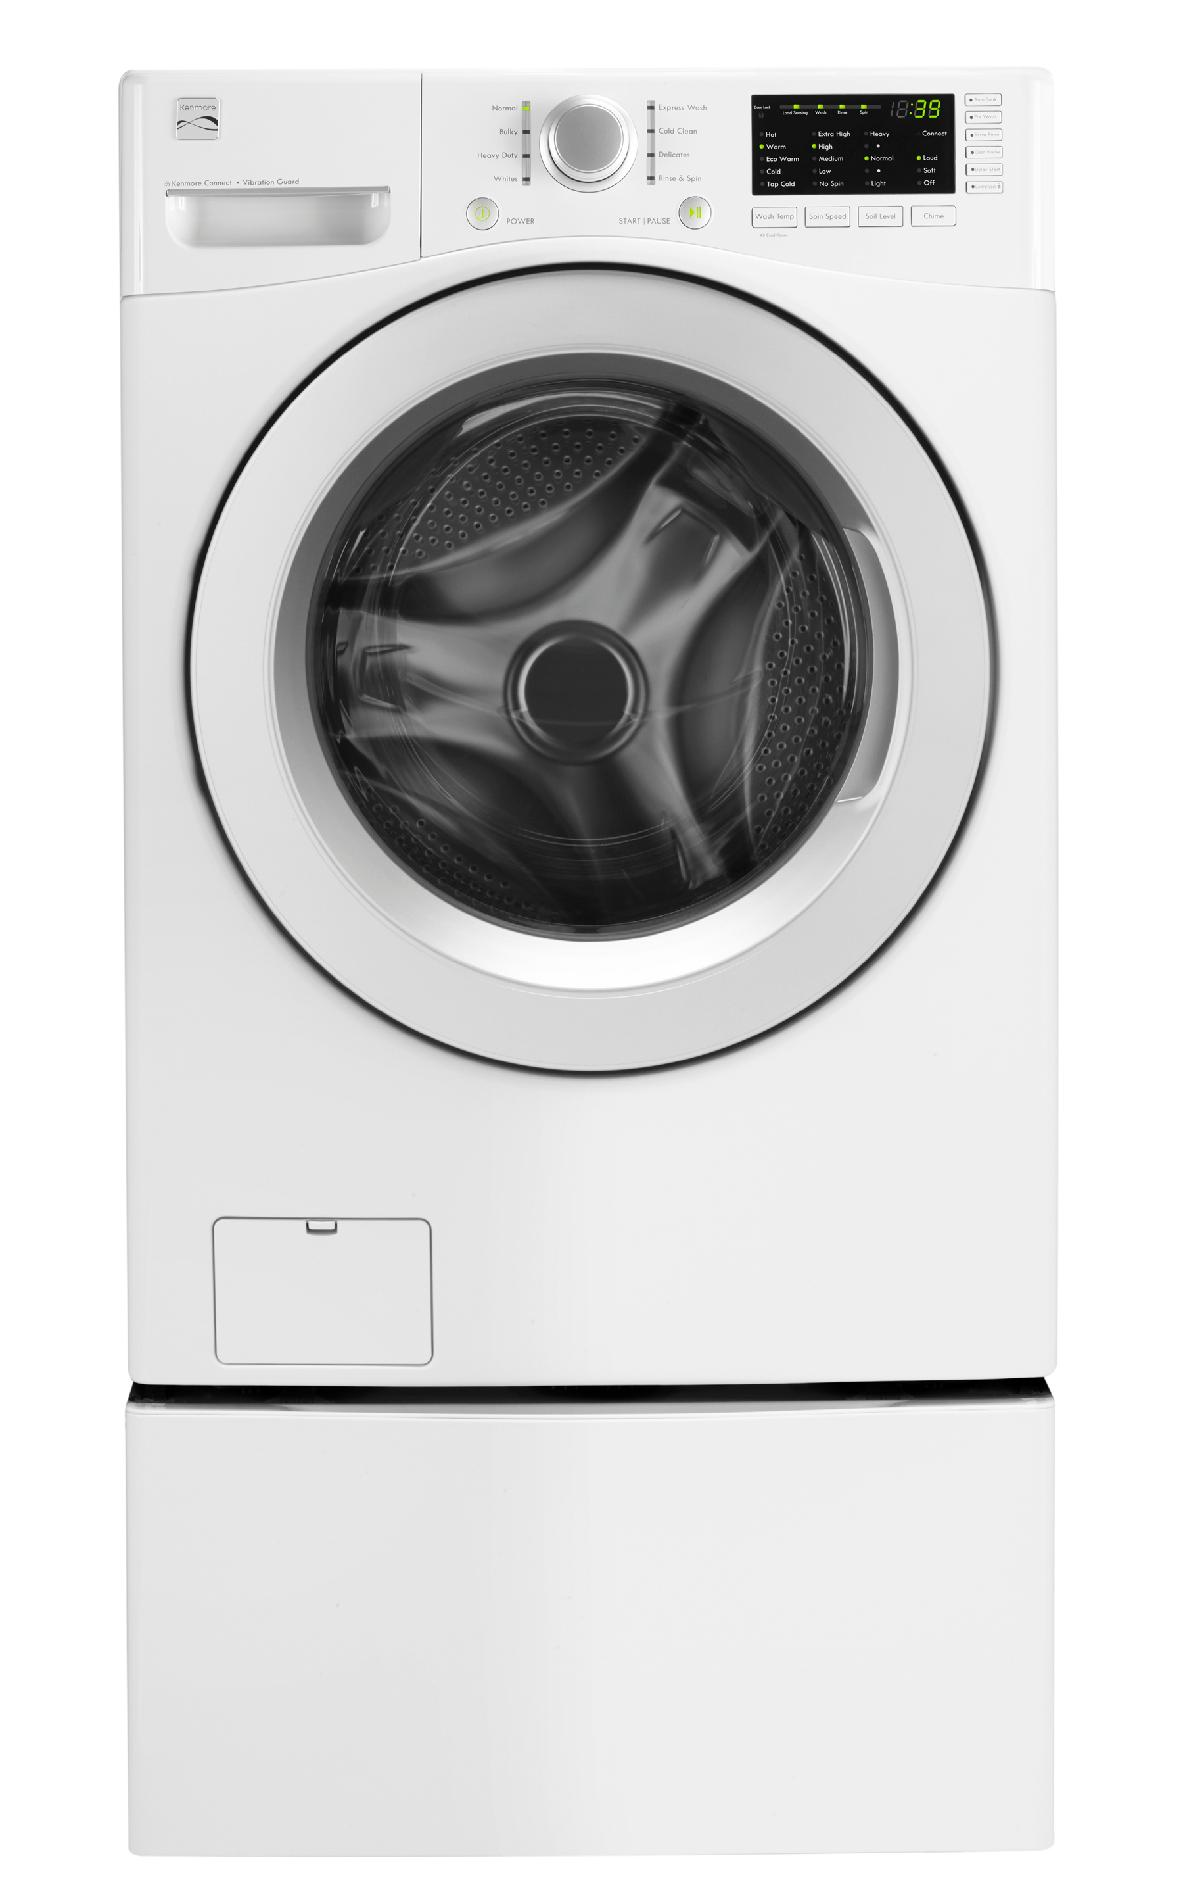 Kenmore 4.0 cu. ft. Front-Load Washer - White